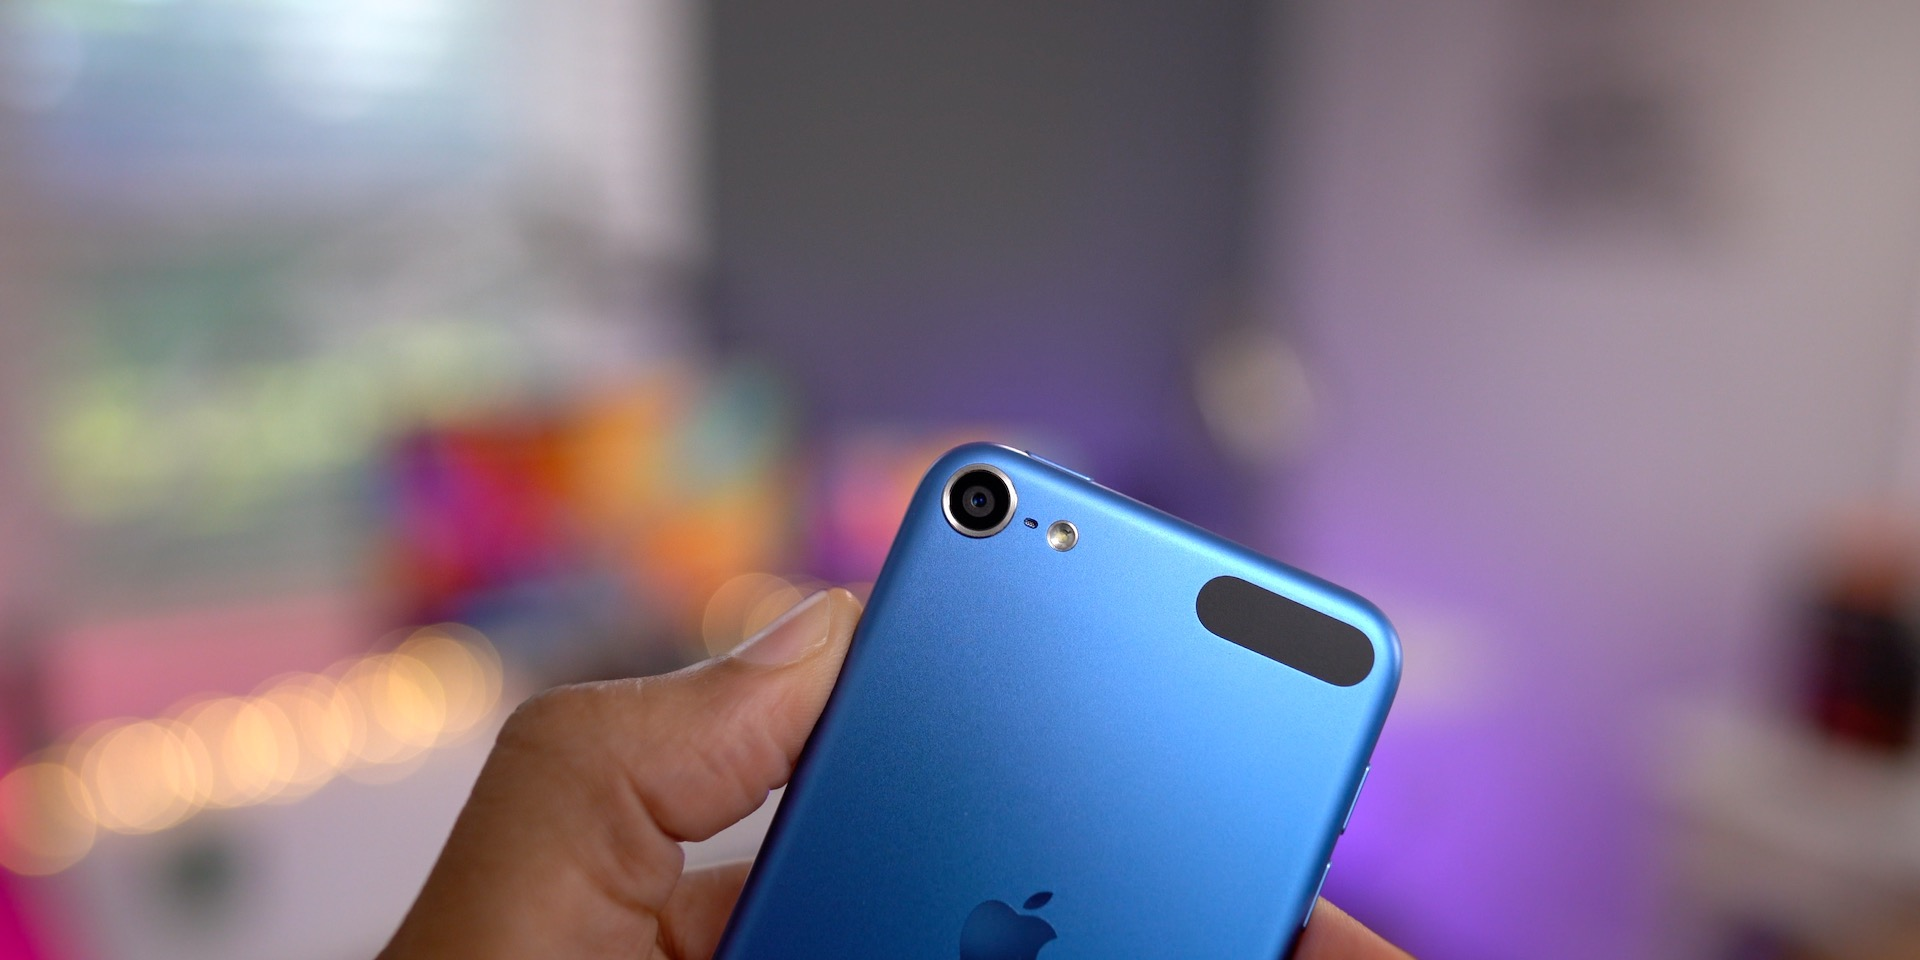 rear camera of iPod touch